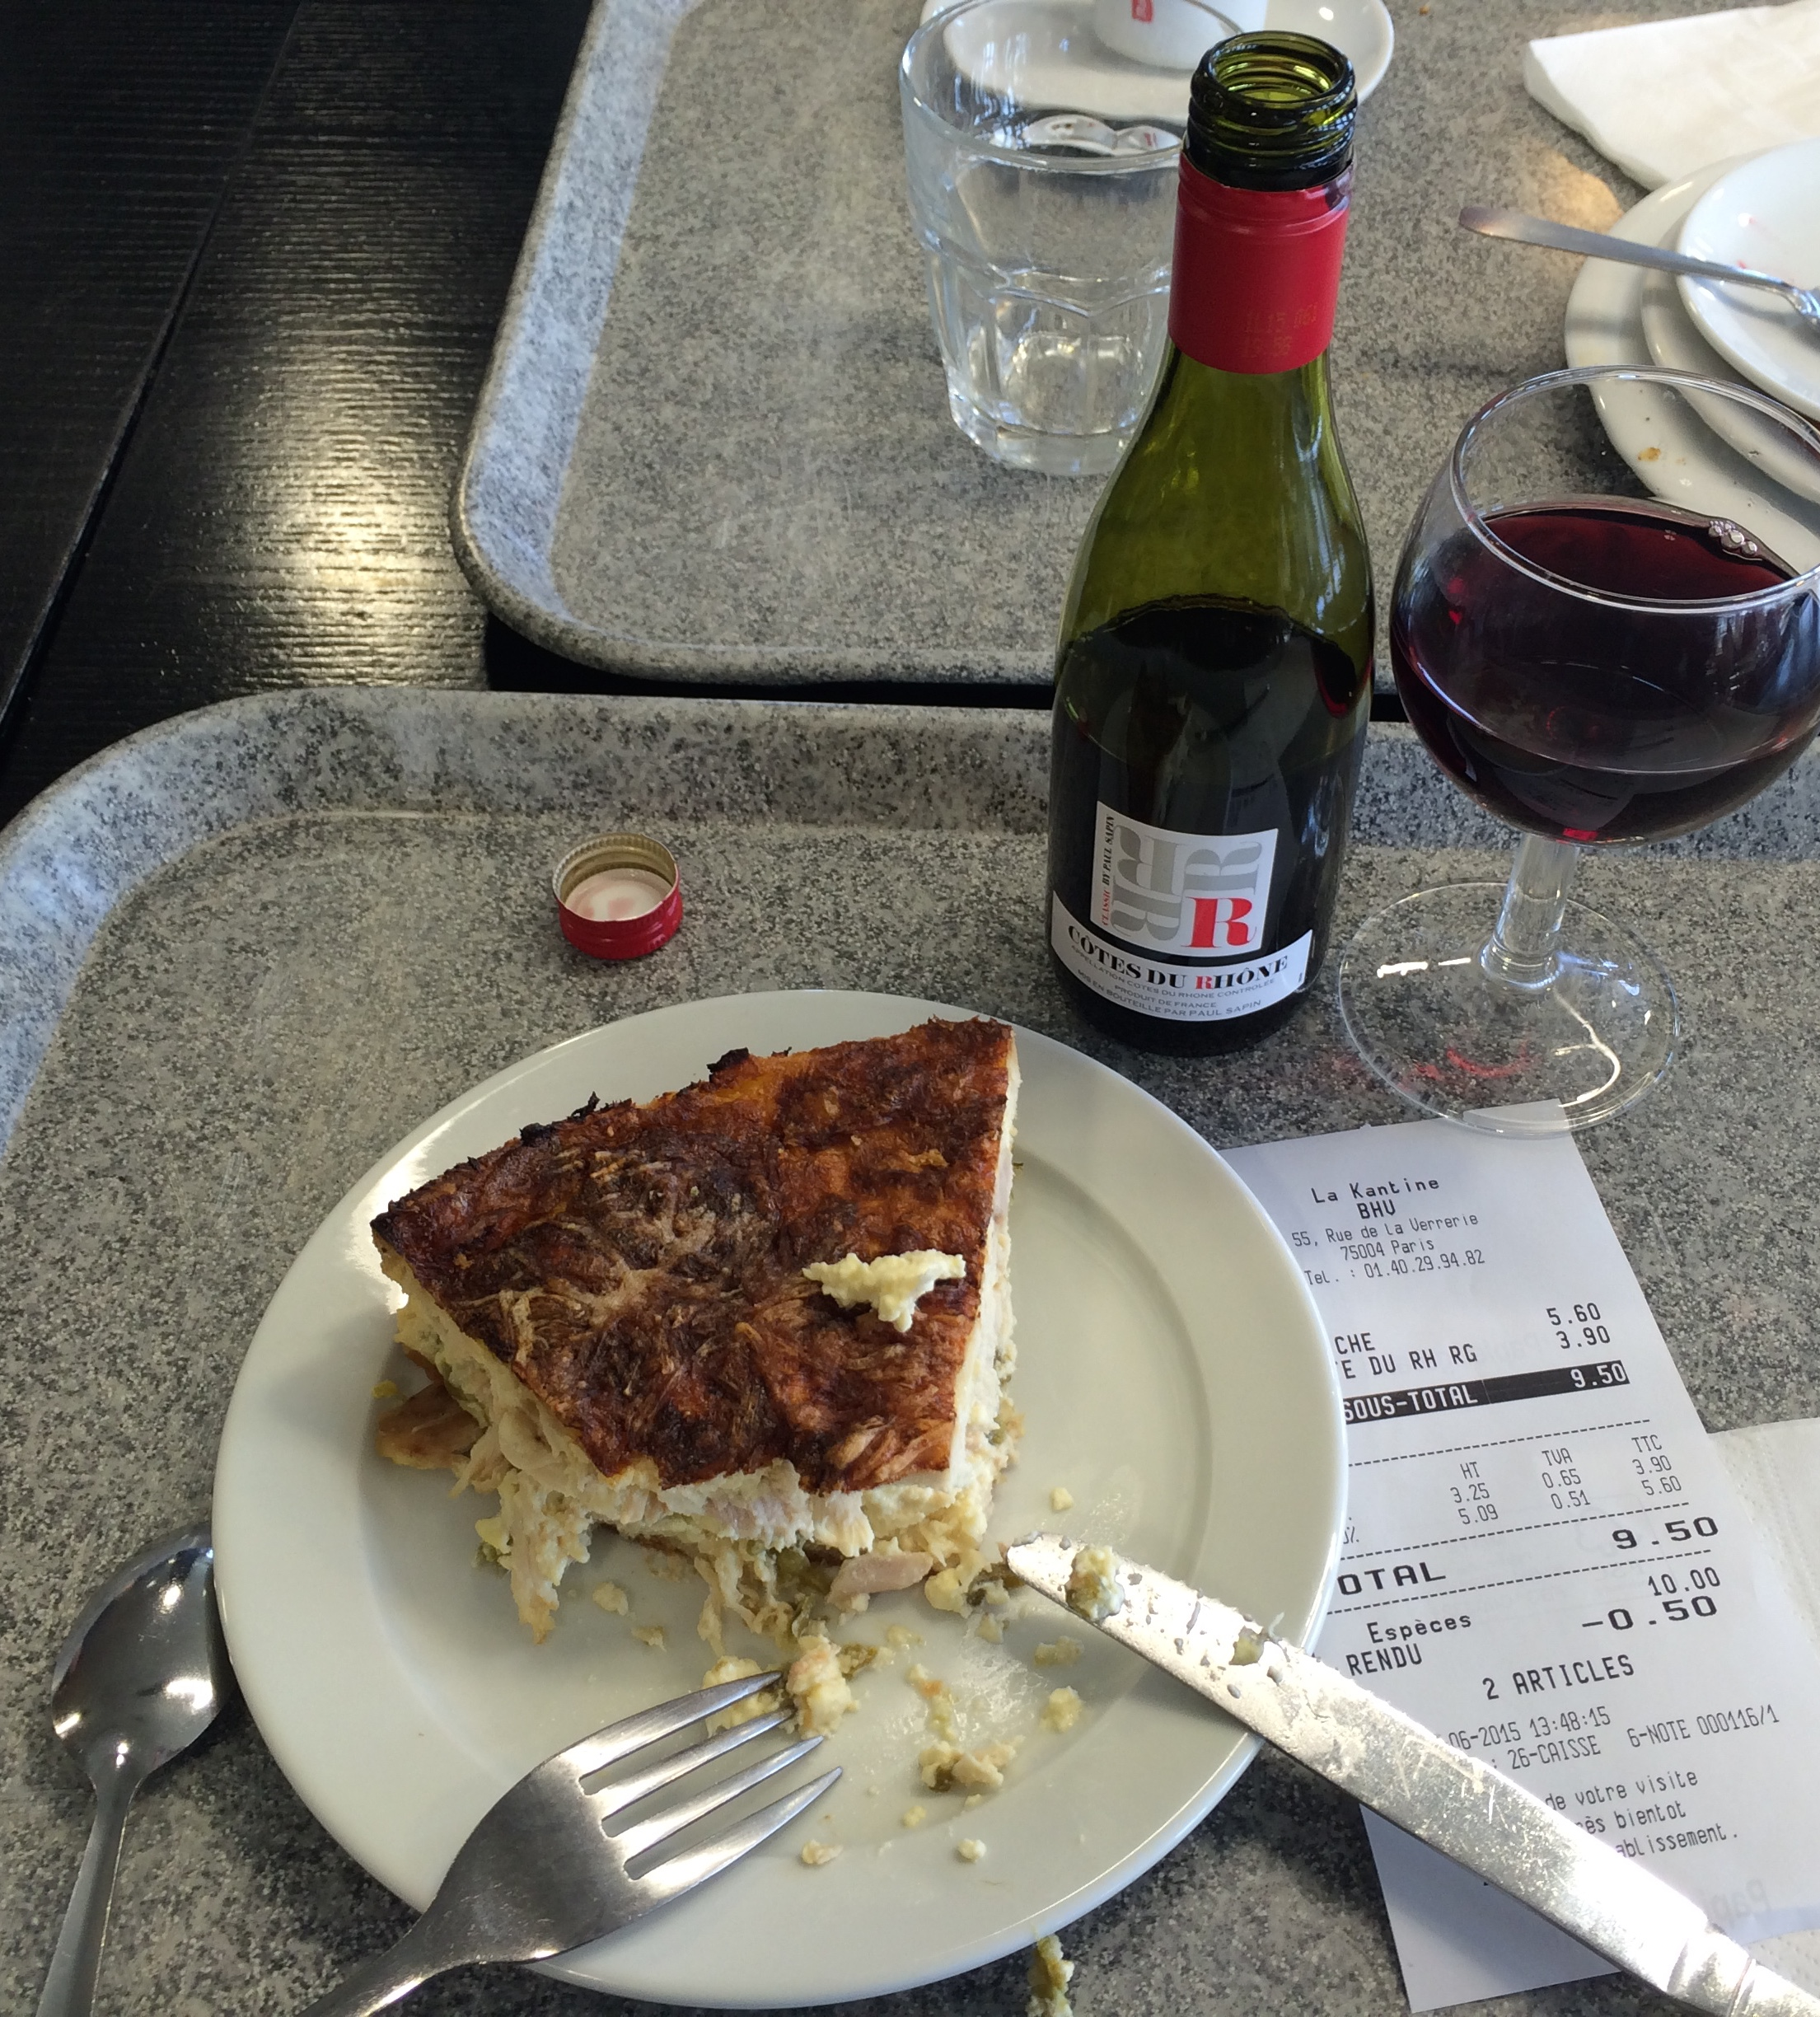 Quiche and Wine at BHV